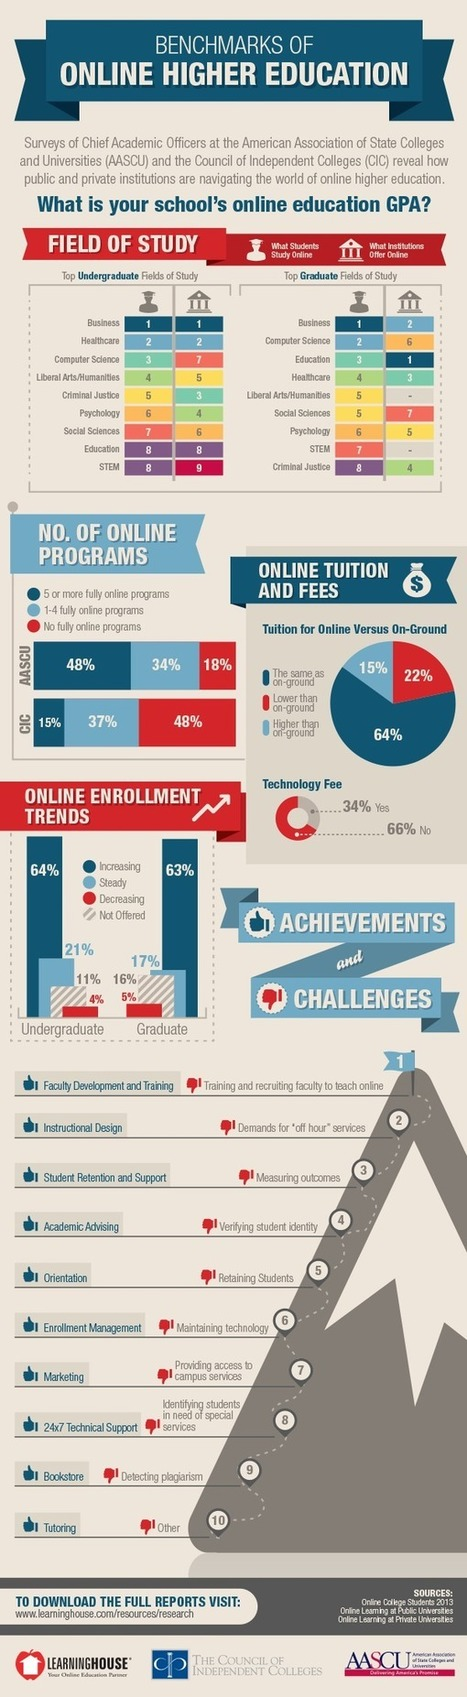 Benchmarks of Online Higher Education [INFOGRAPHIC] - The Learning House | teaching and learning | Scoop.it